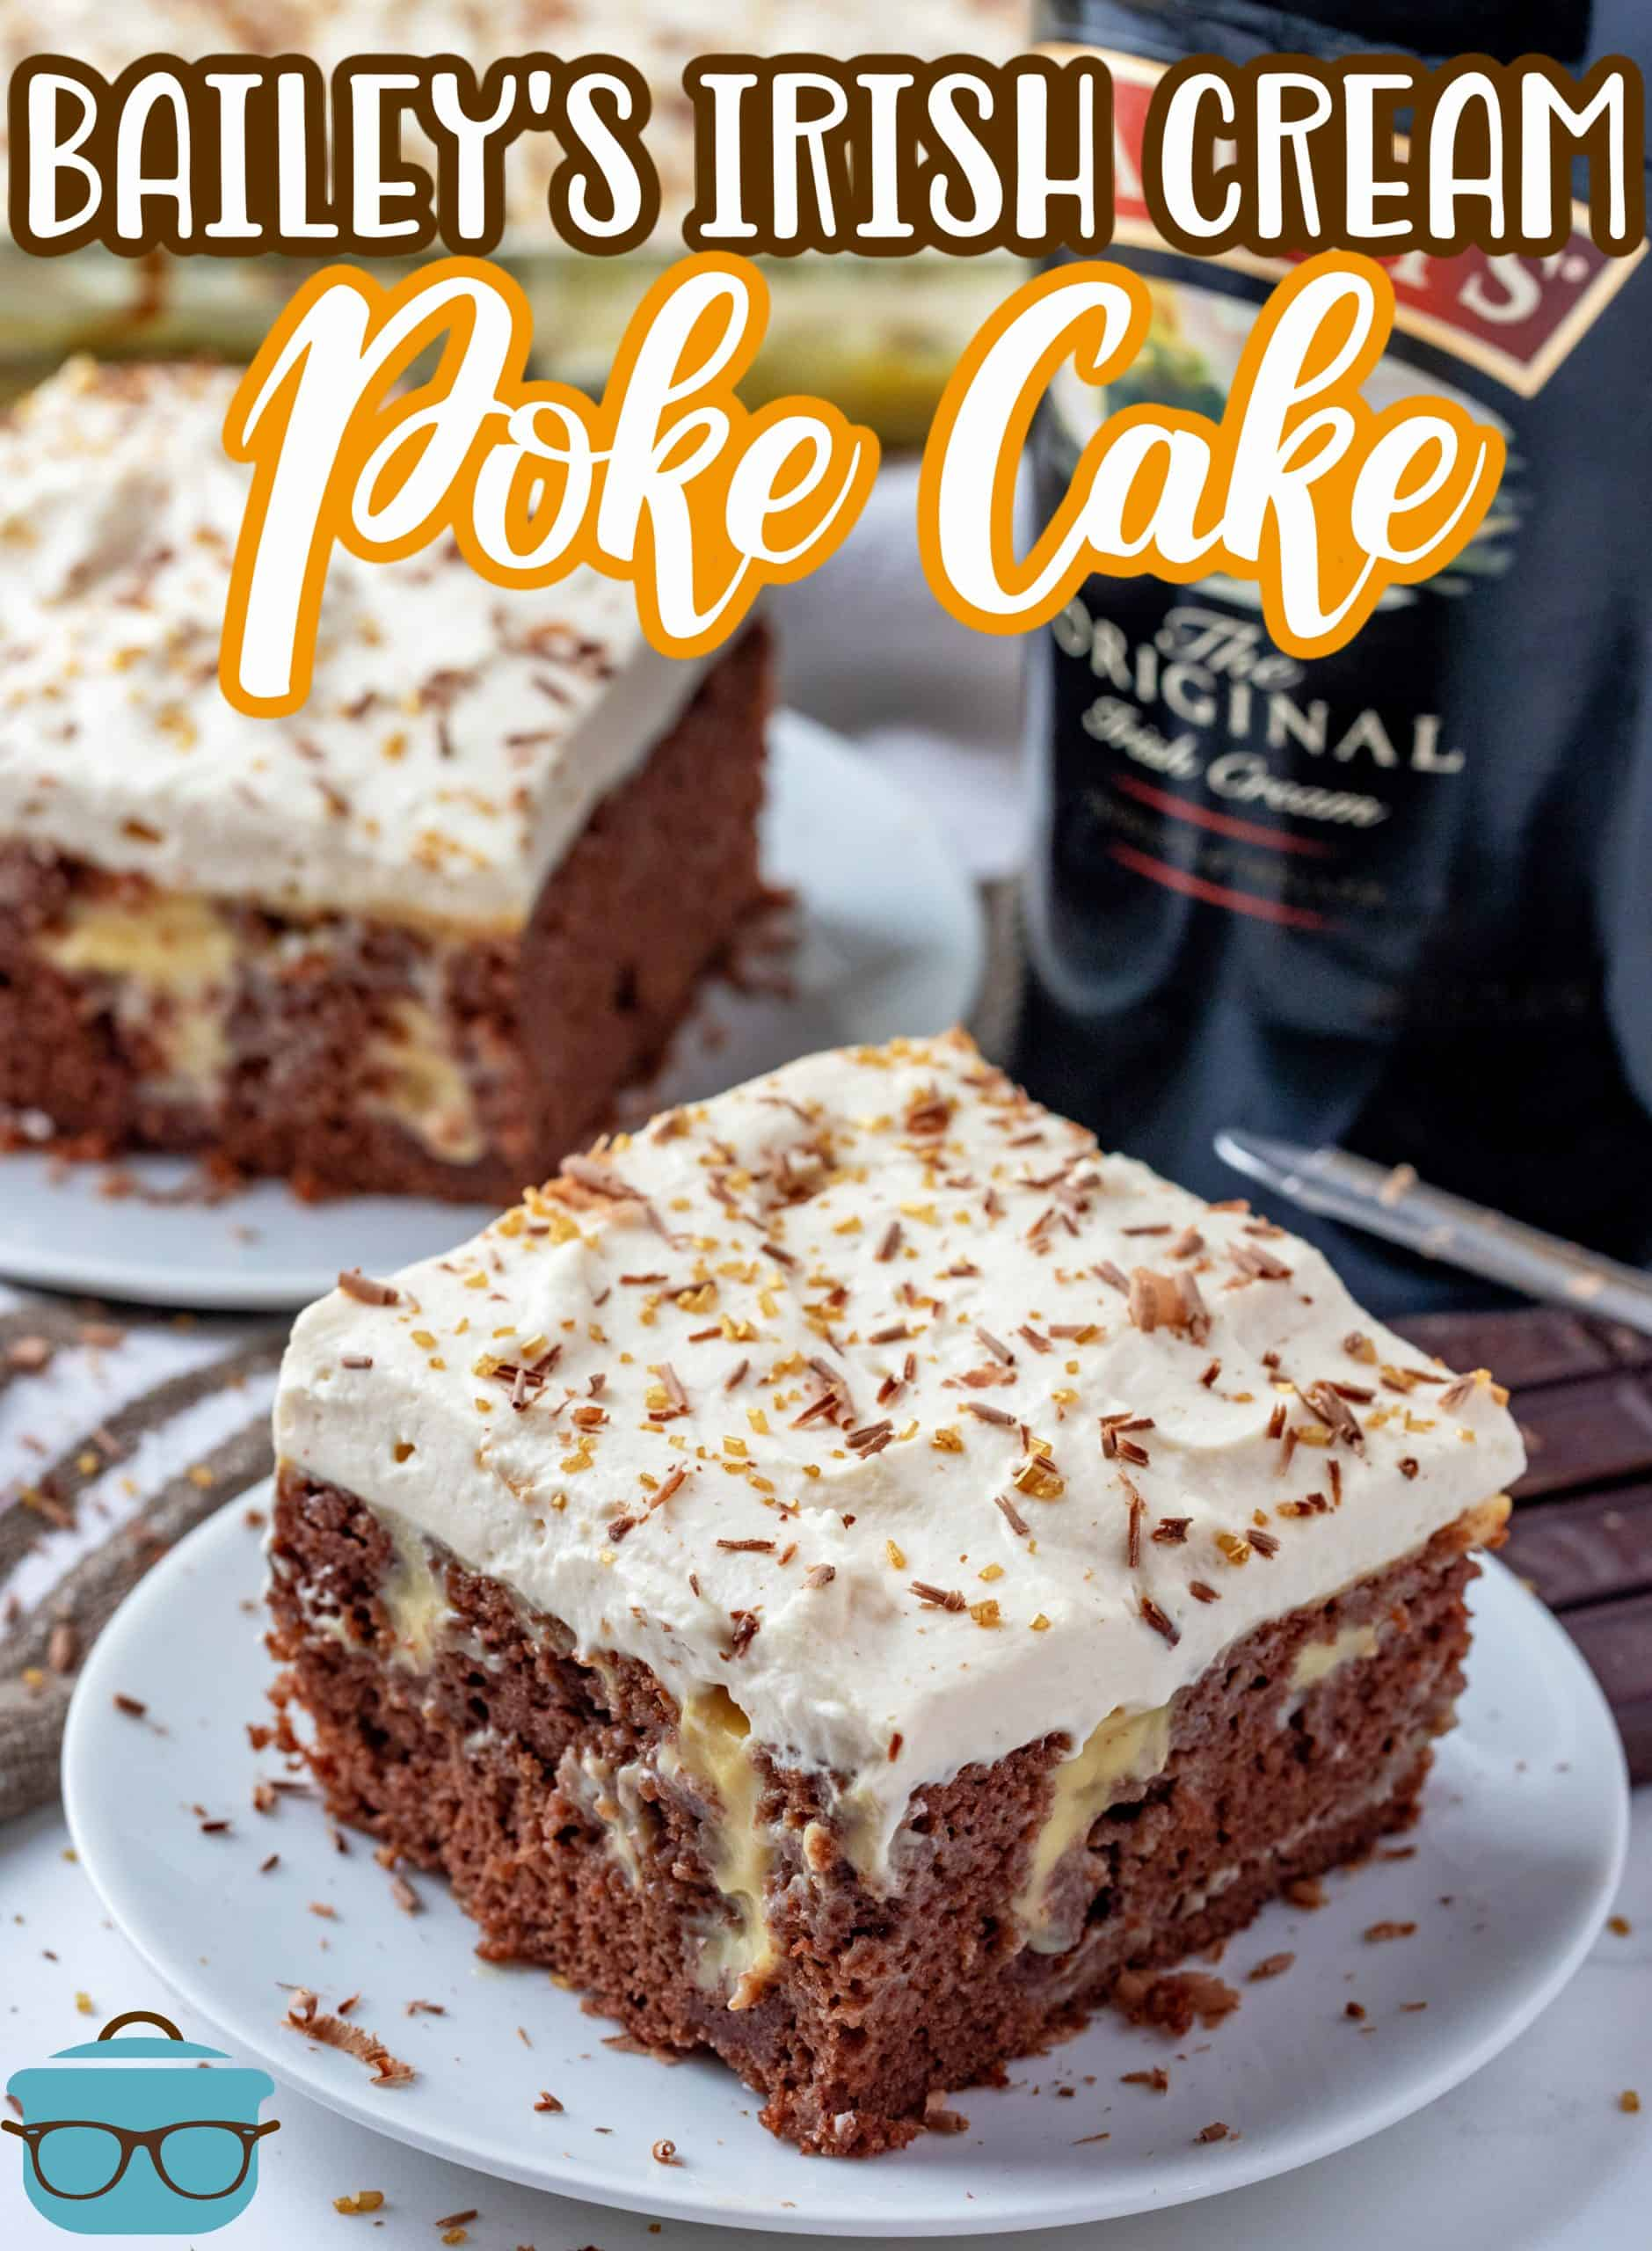 A deliciously boozy cake, this Baileys Chocolate Poke Cake is filled with a Baileys vanilla pudding and all topped off with a Baileys infused frosting!